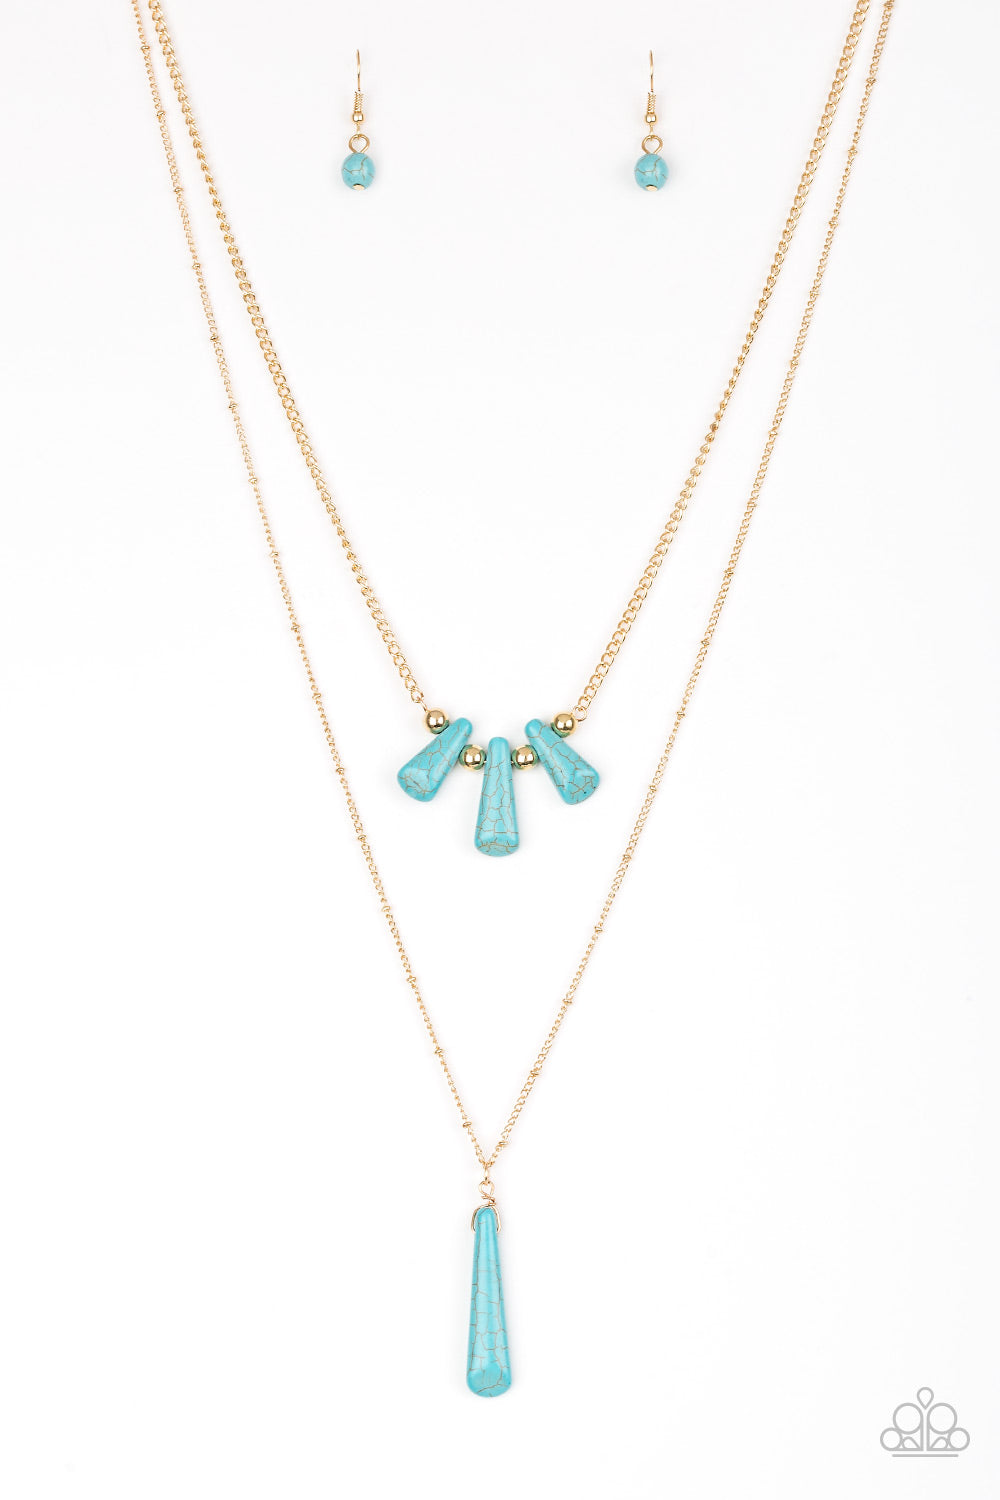 Paparazzi Accessories - Basic Groundwork - Blue Necklace Set - JMJ Jewelry Collection